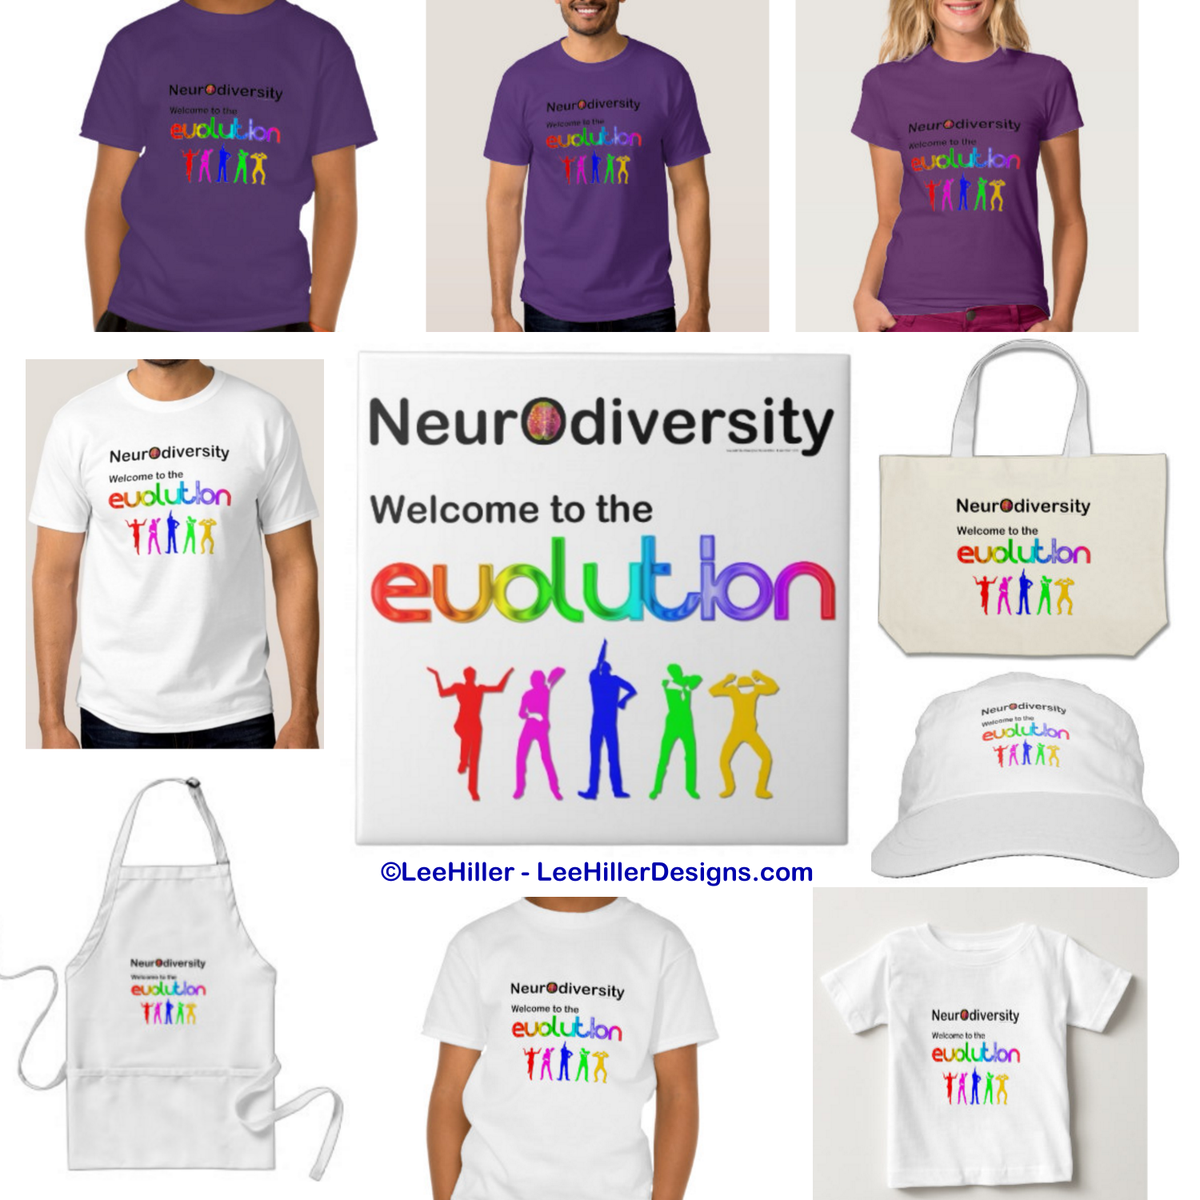 #Neurodiversity Welcome to the #Evolution #Autistic #Aspergers #Autism #TShirt #Gifts  http:// bitly.com/Neurodiversity Z1 &nbsp; … <br>http://pic.twitter.com/qgaNfDWxWi